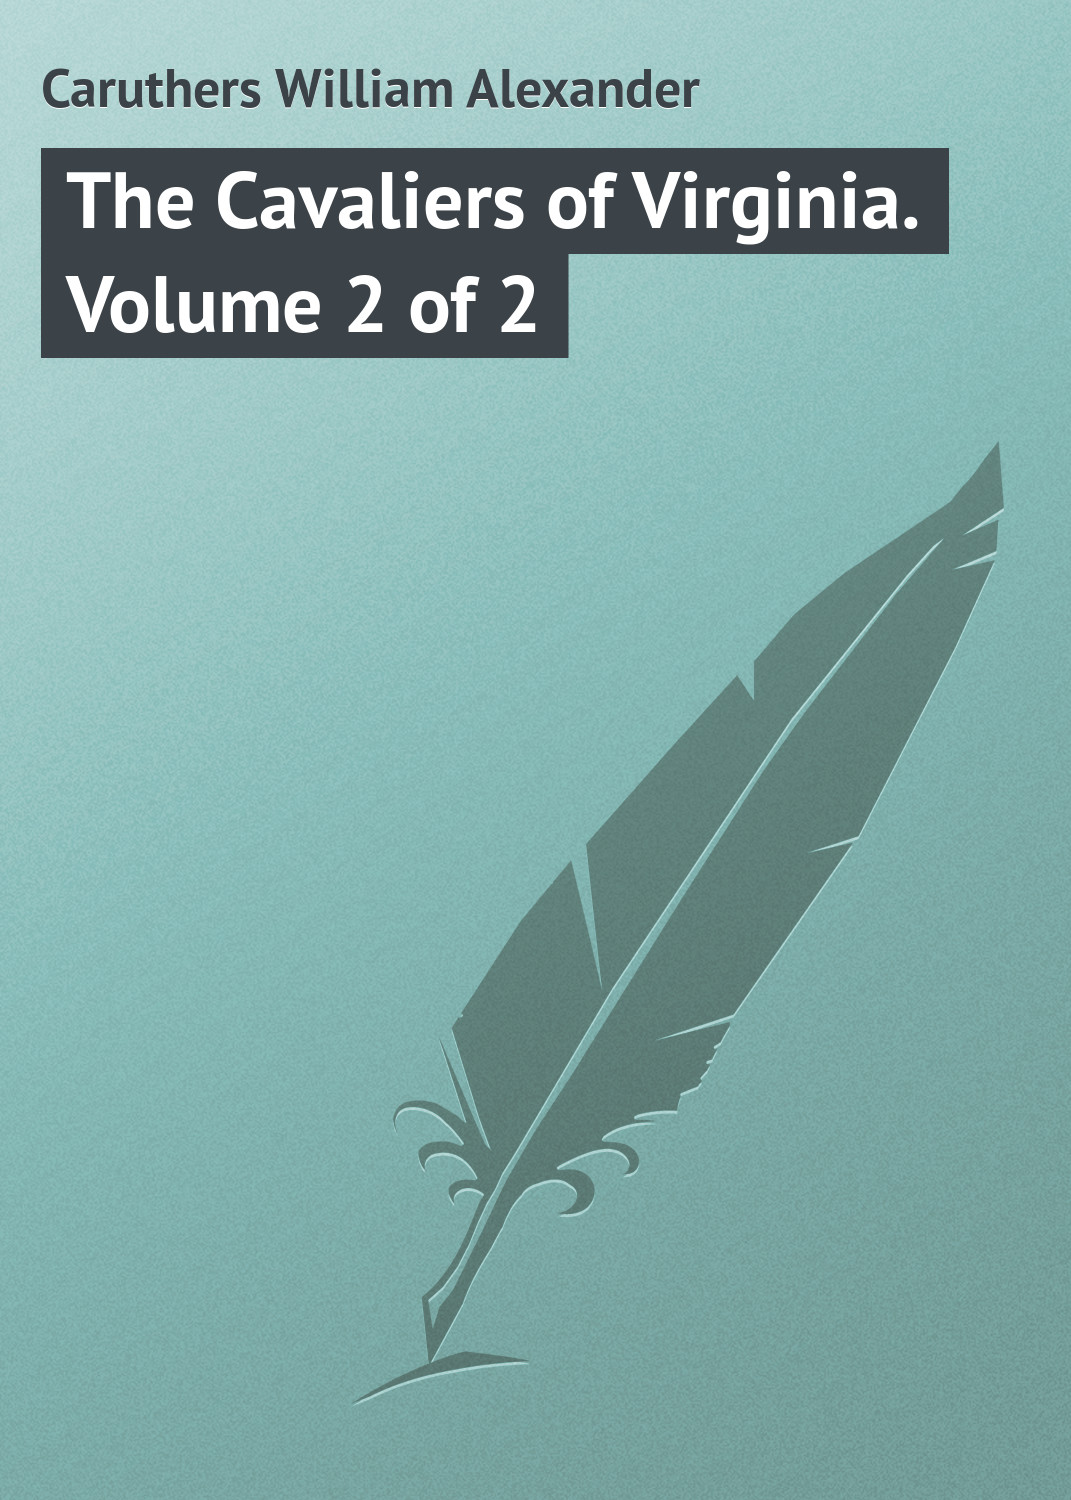 Caruthers William Alexander The Cavaliers of Virginia. Volume 2 of 2 james william the principles of psychology volume 2